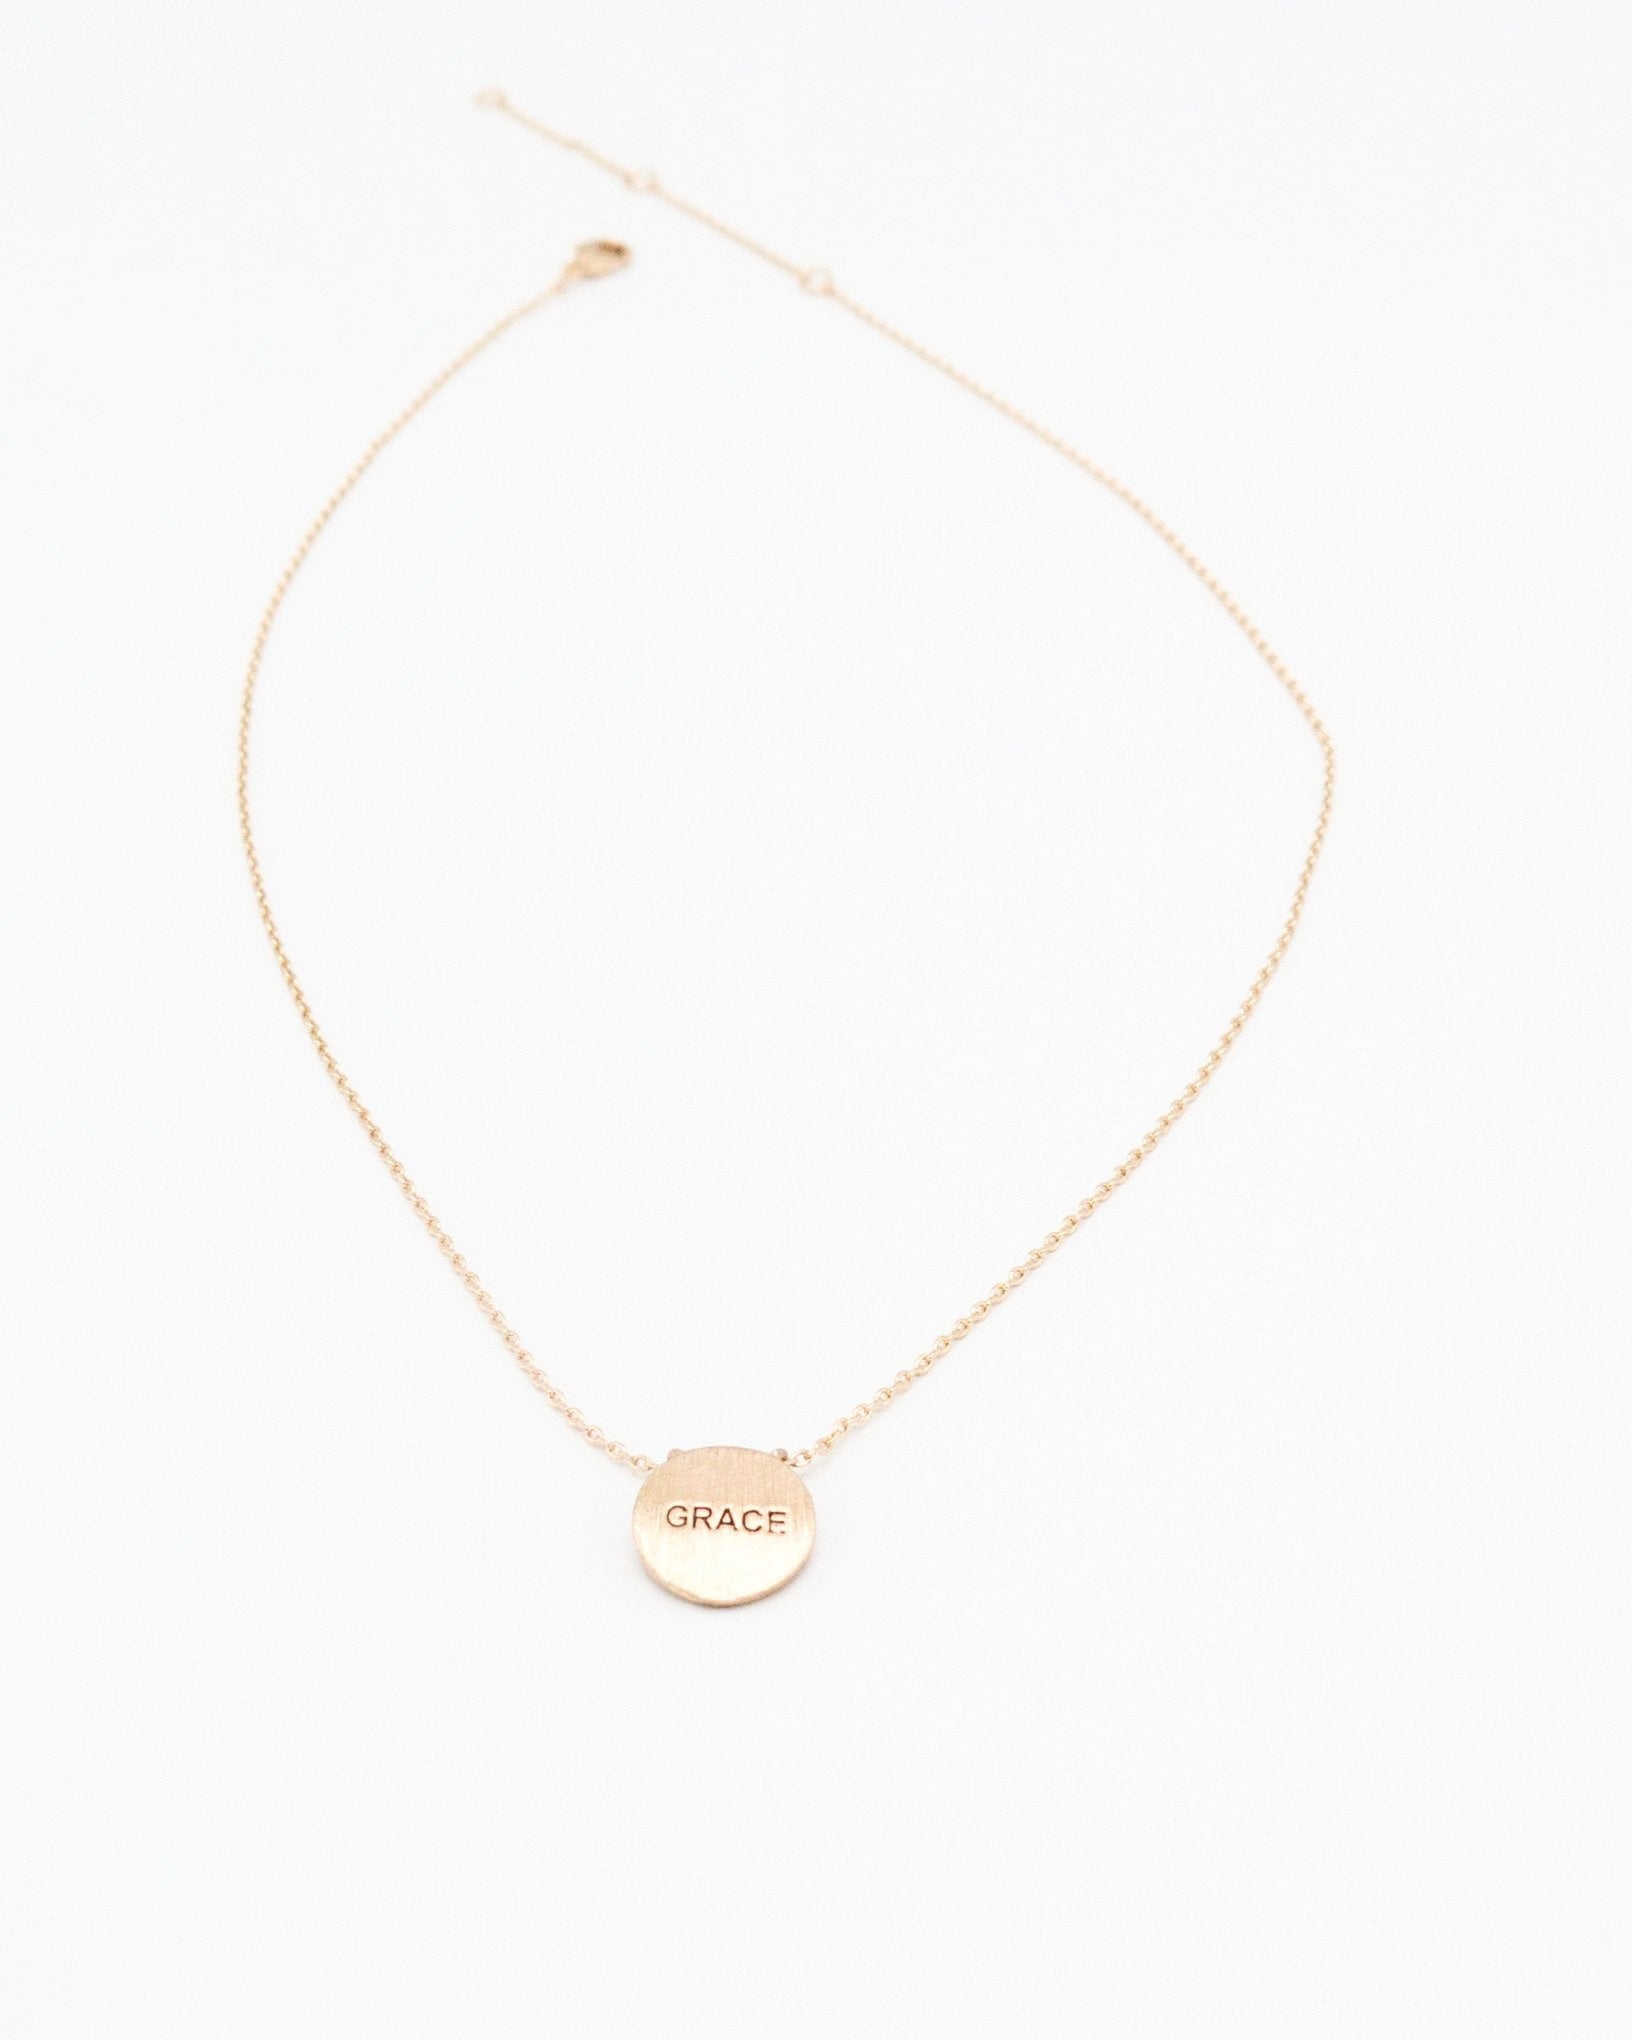 Grace Inspirational Round Necklace in rose gold